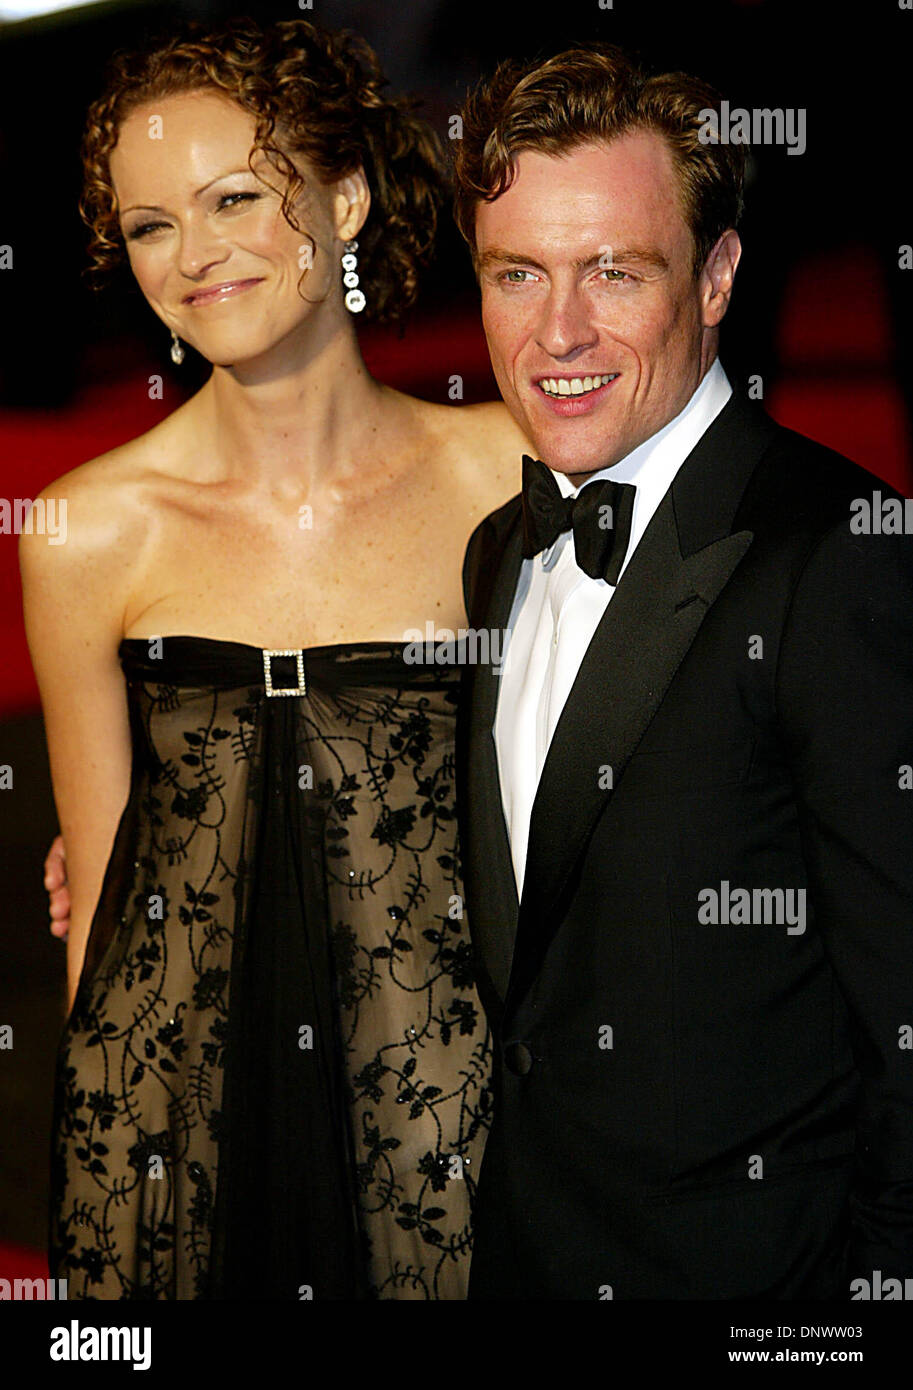 Toby stephens dating history